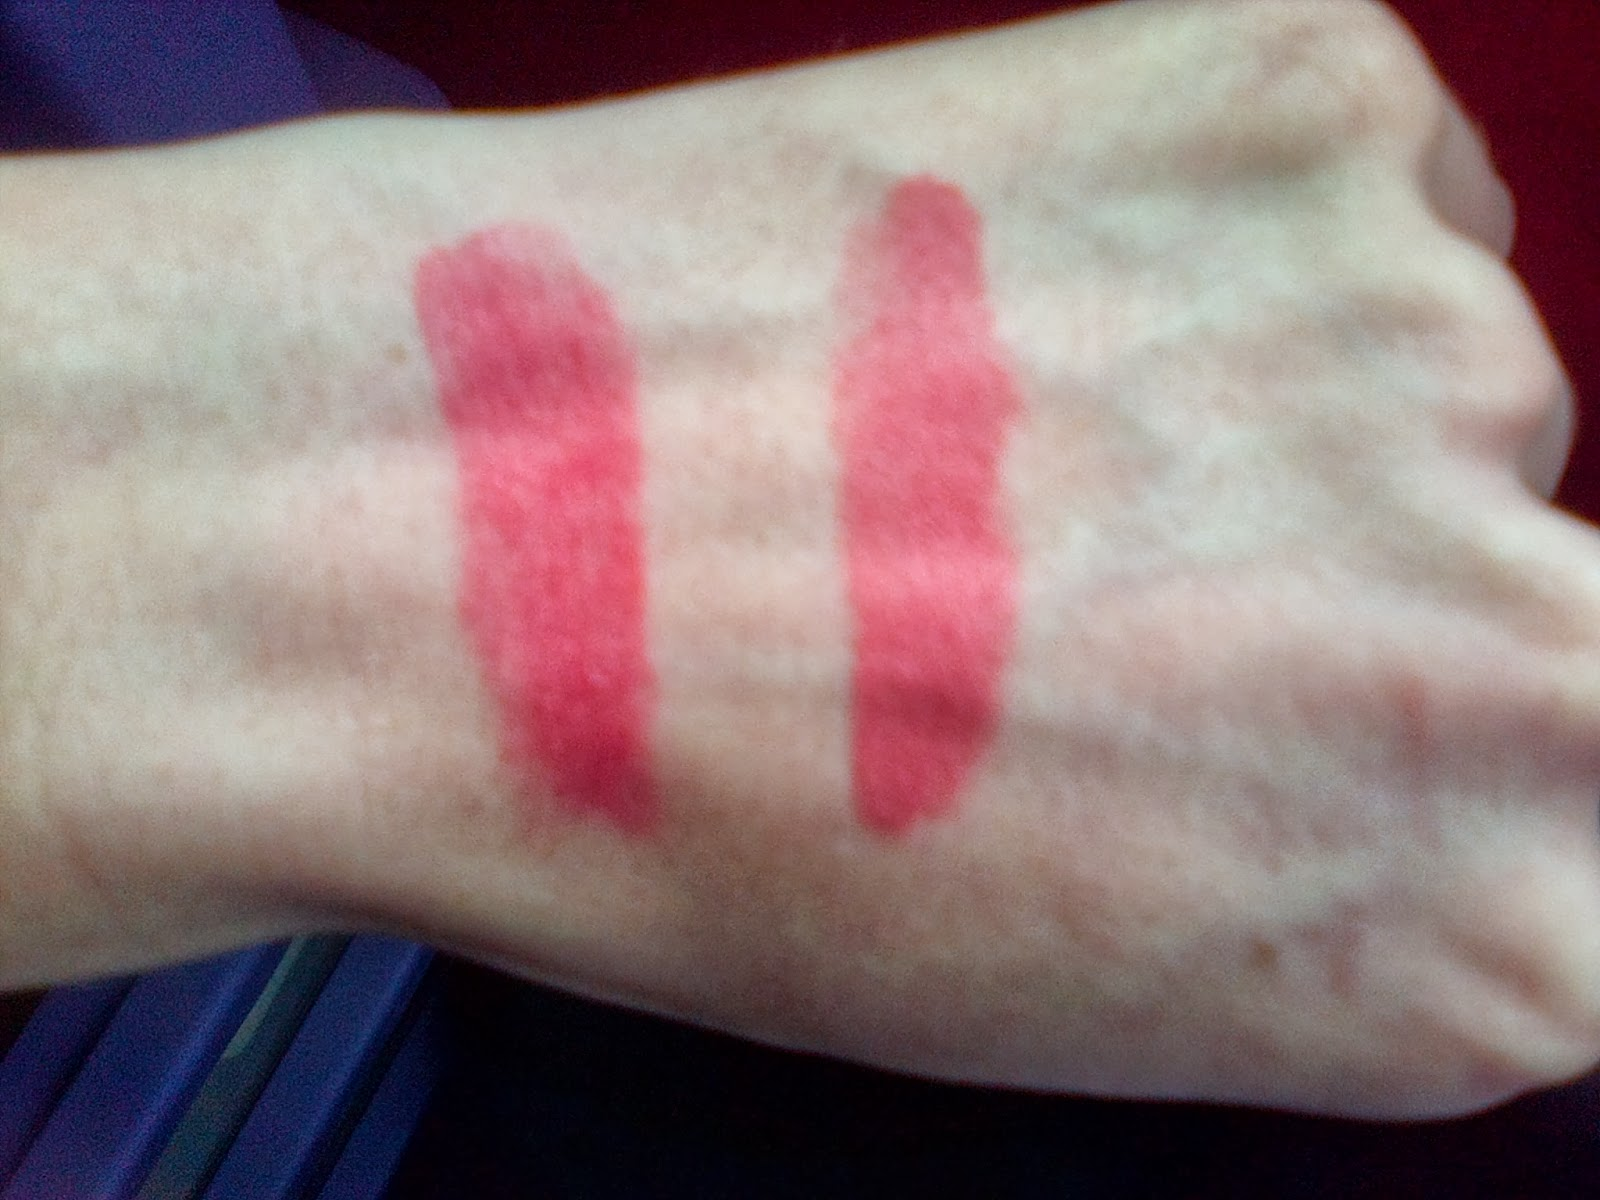 Rimmel Pink Gossip and Shake it up Pink Lipstick Swatches